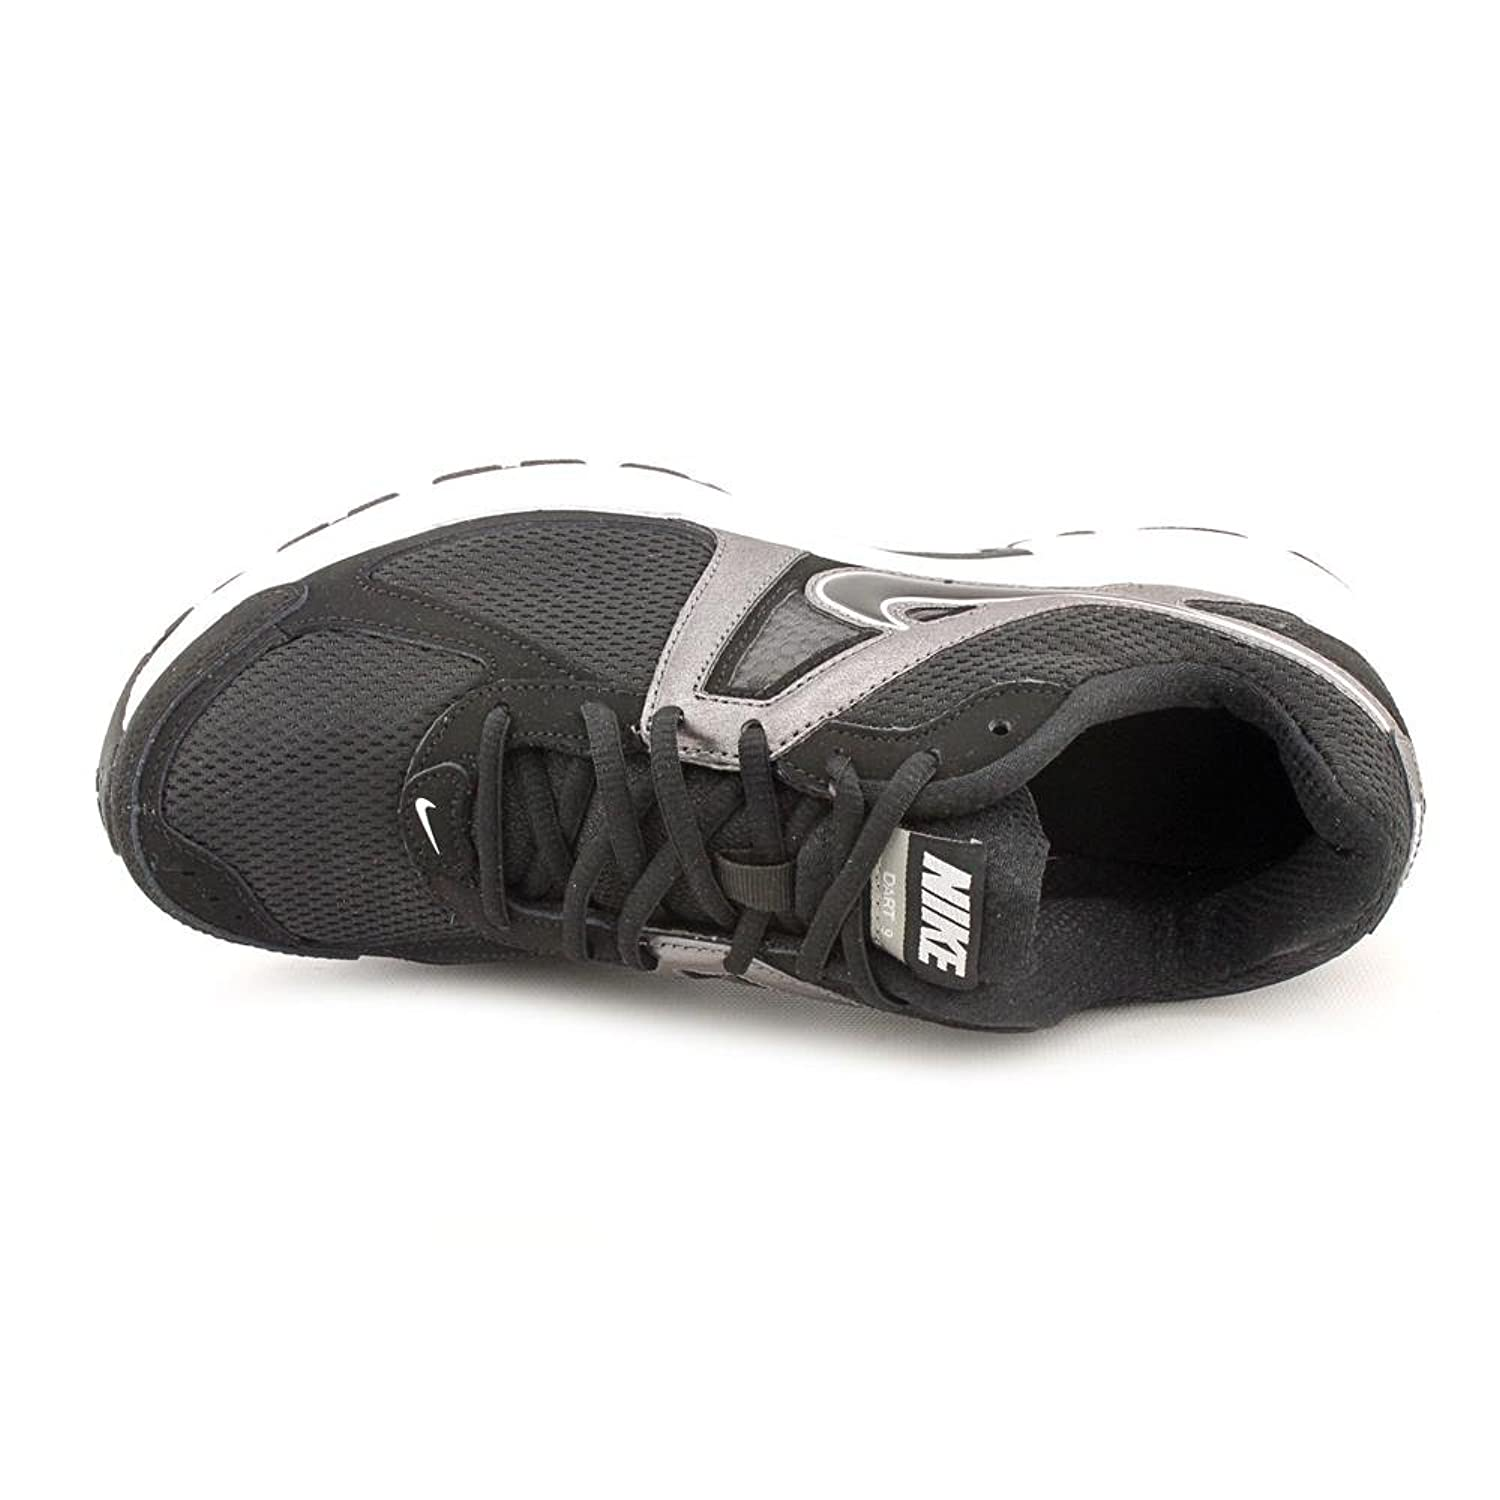 2646e6fe40ee03 ... cheapest amazon nike mens dart 9 black black mtlc drk gry white running  shoe 10 men